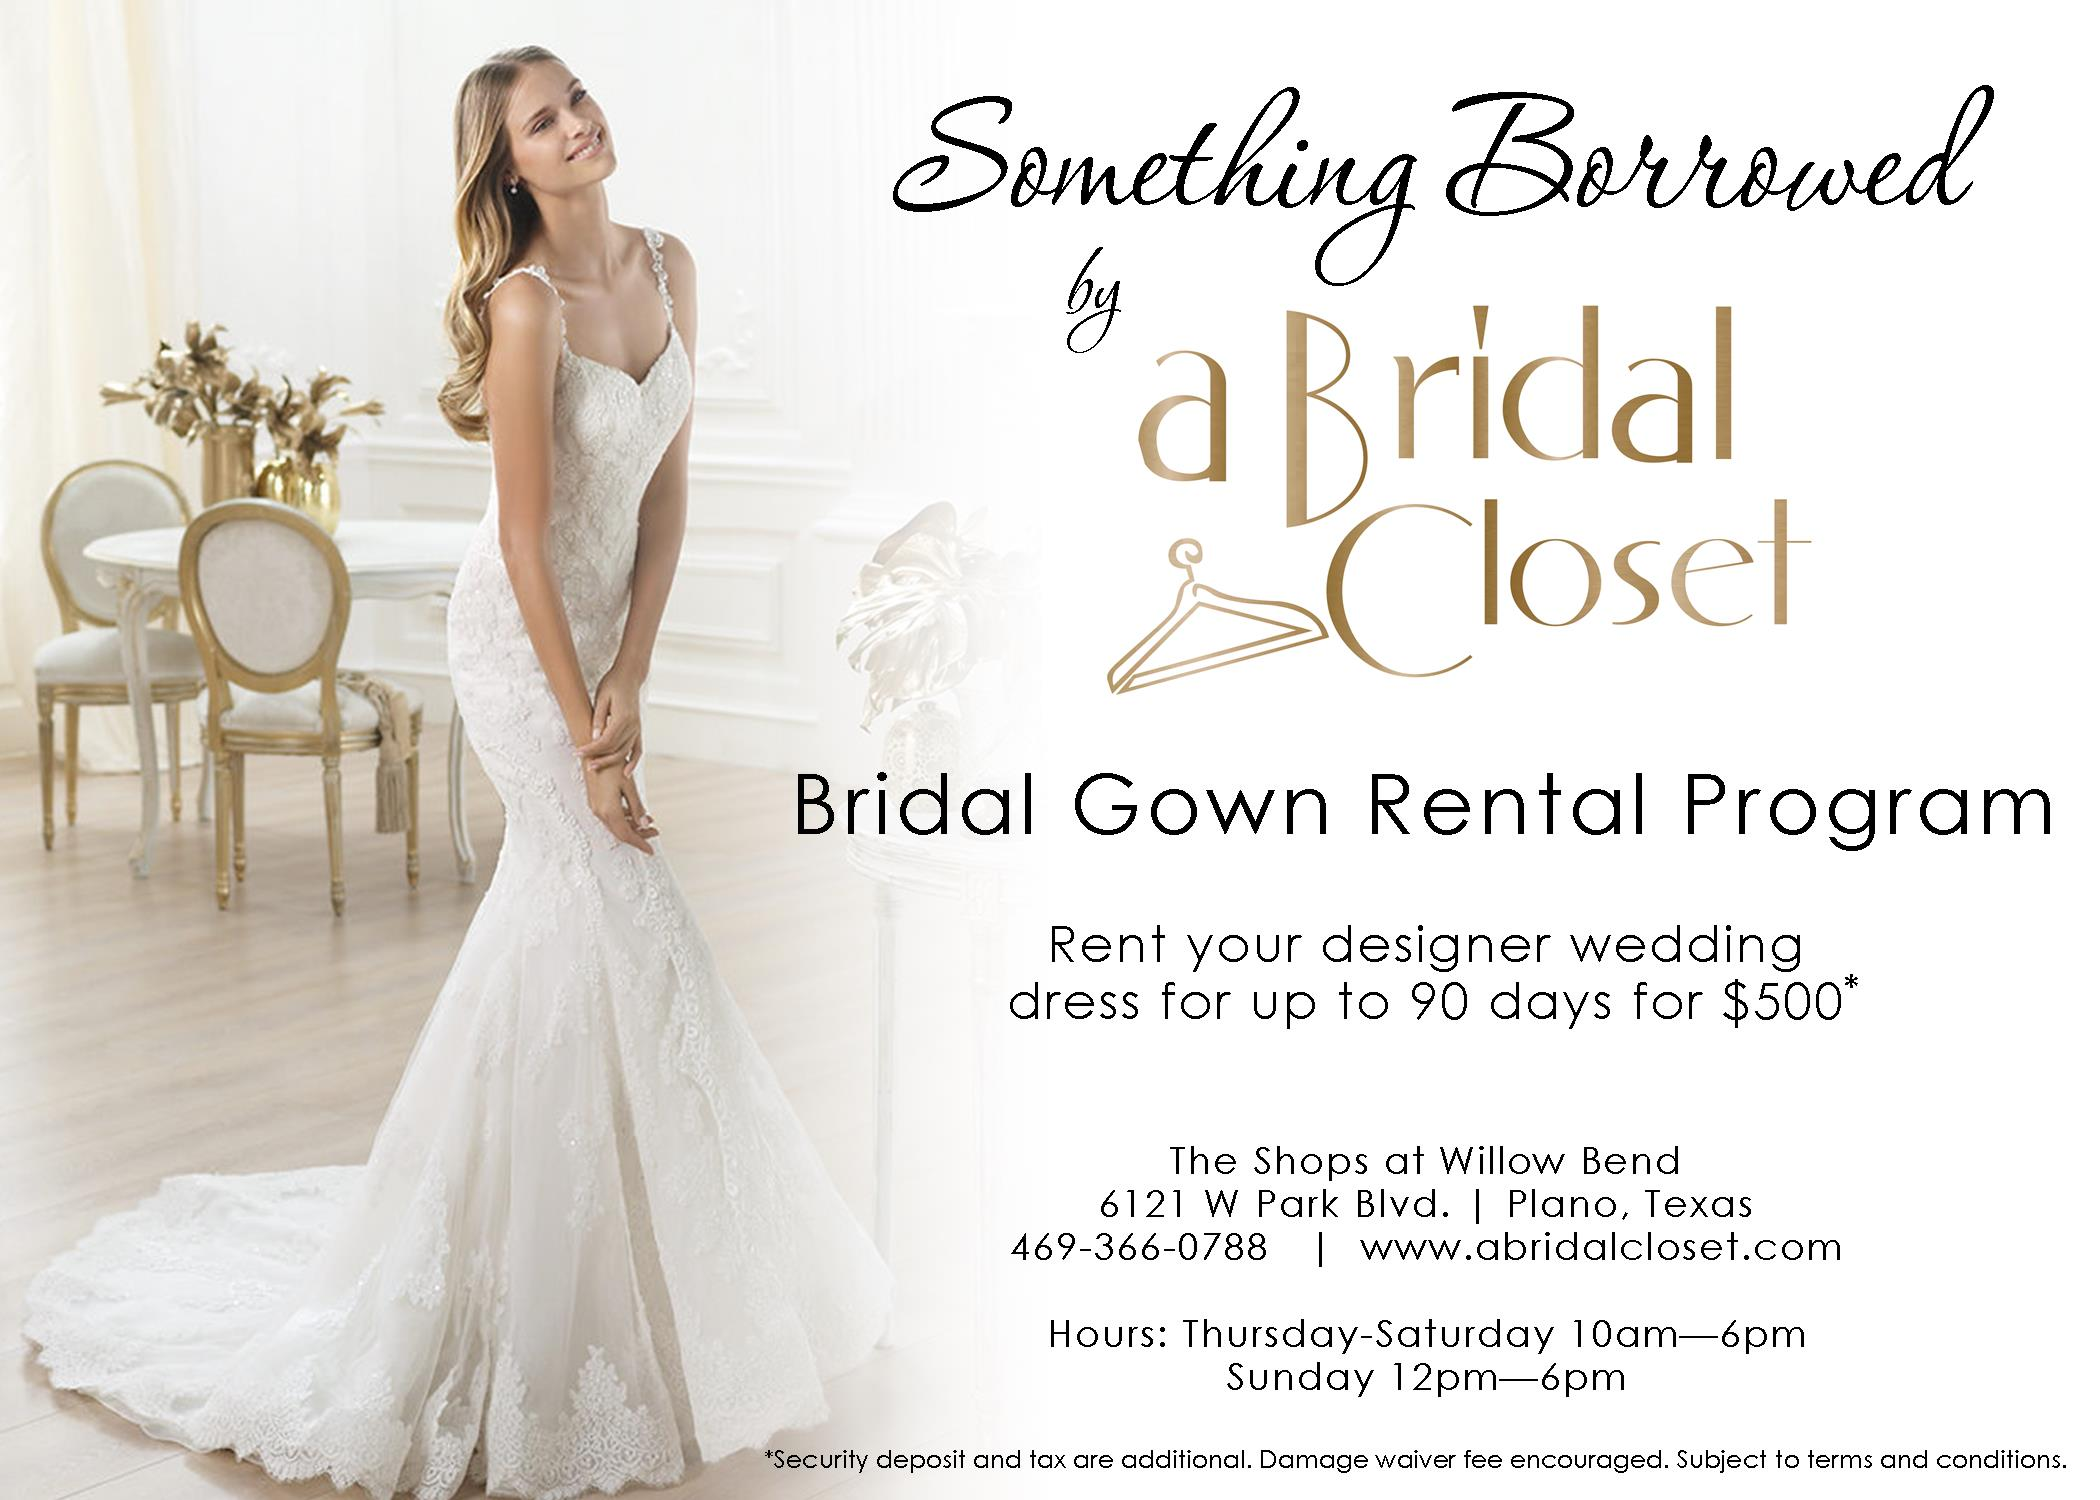 Dallas bridal outlet a bridal closet click here to learn more about our bridal gown rental program junglespirit